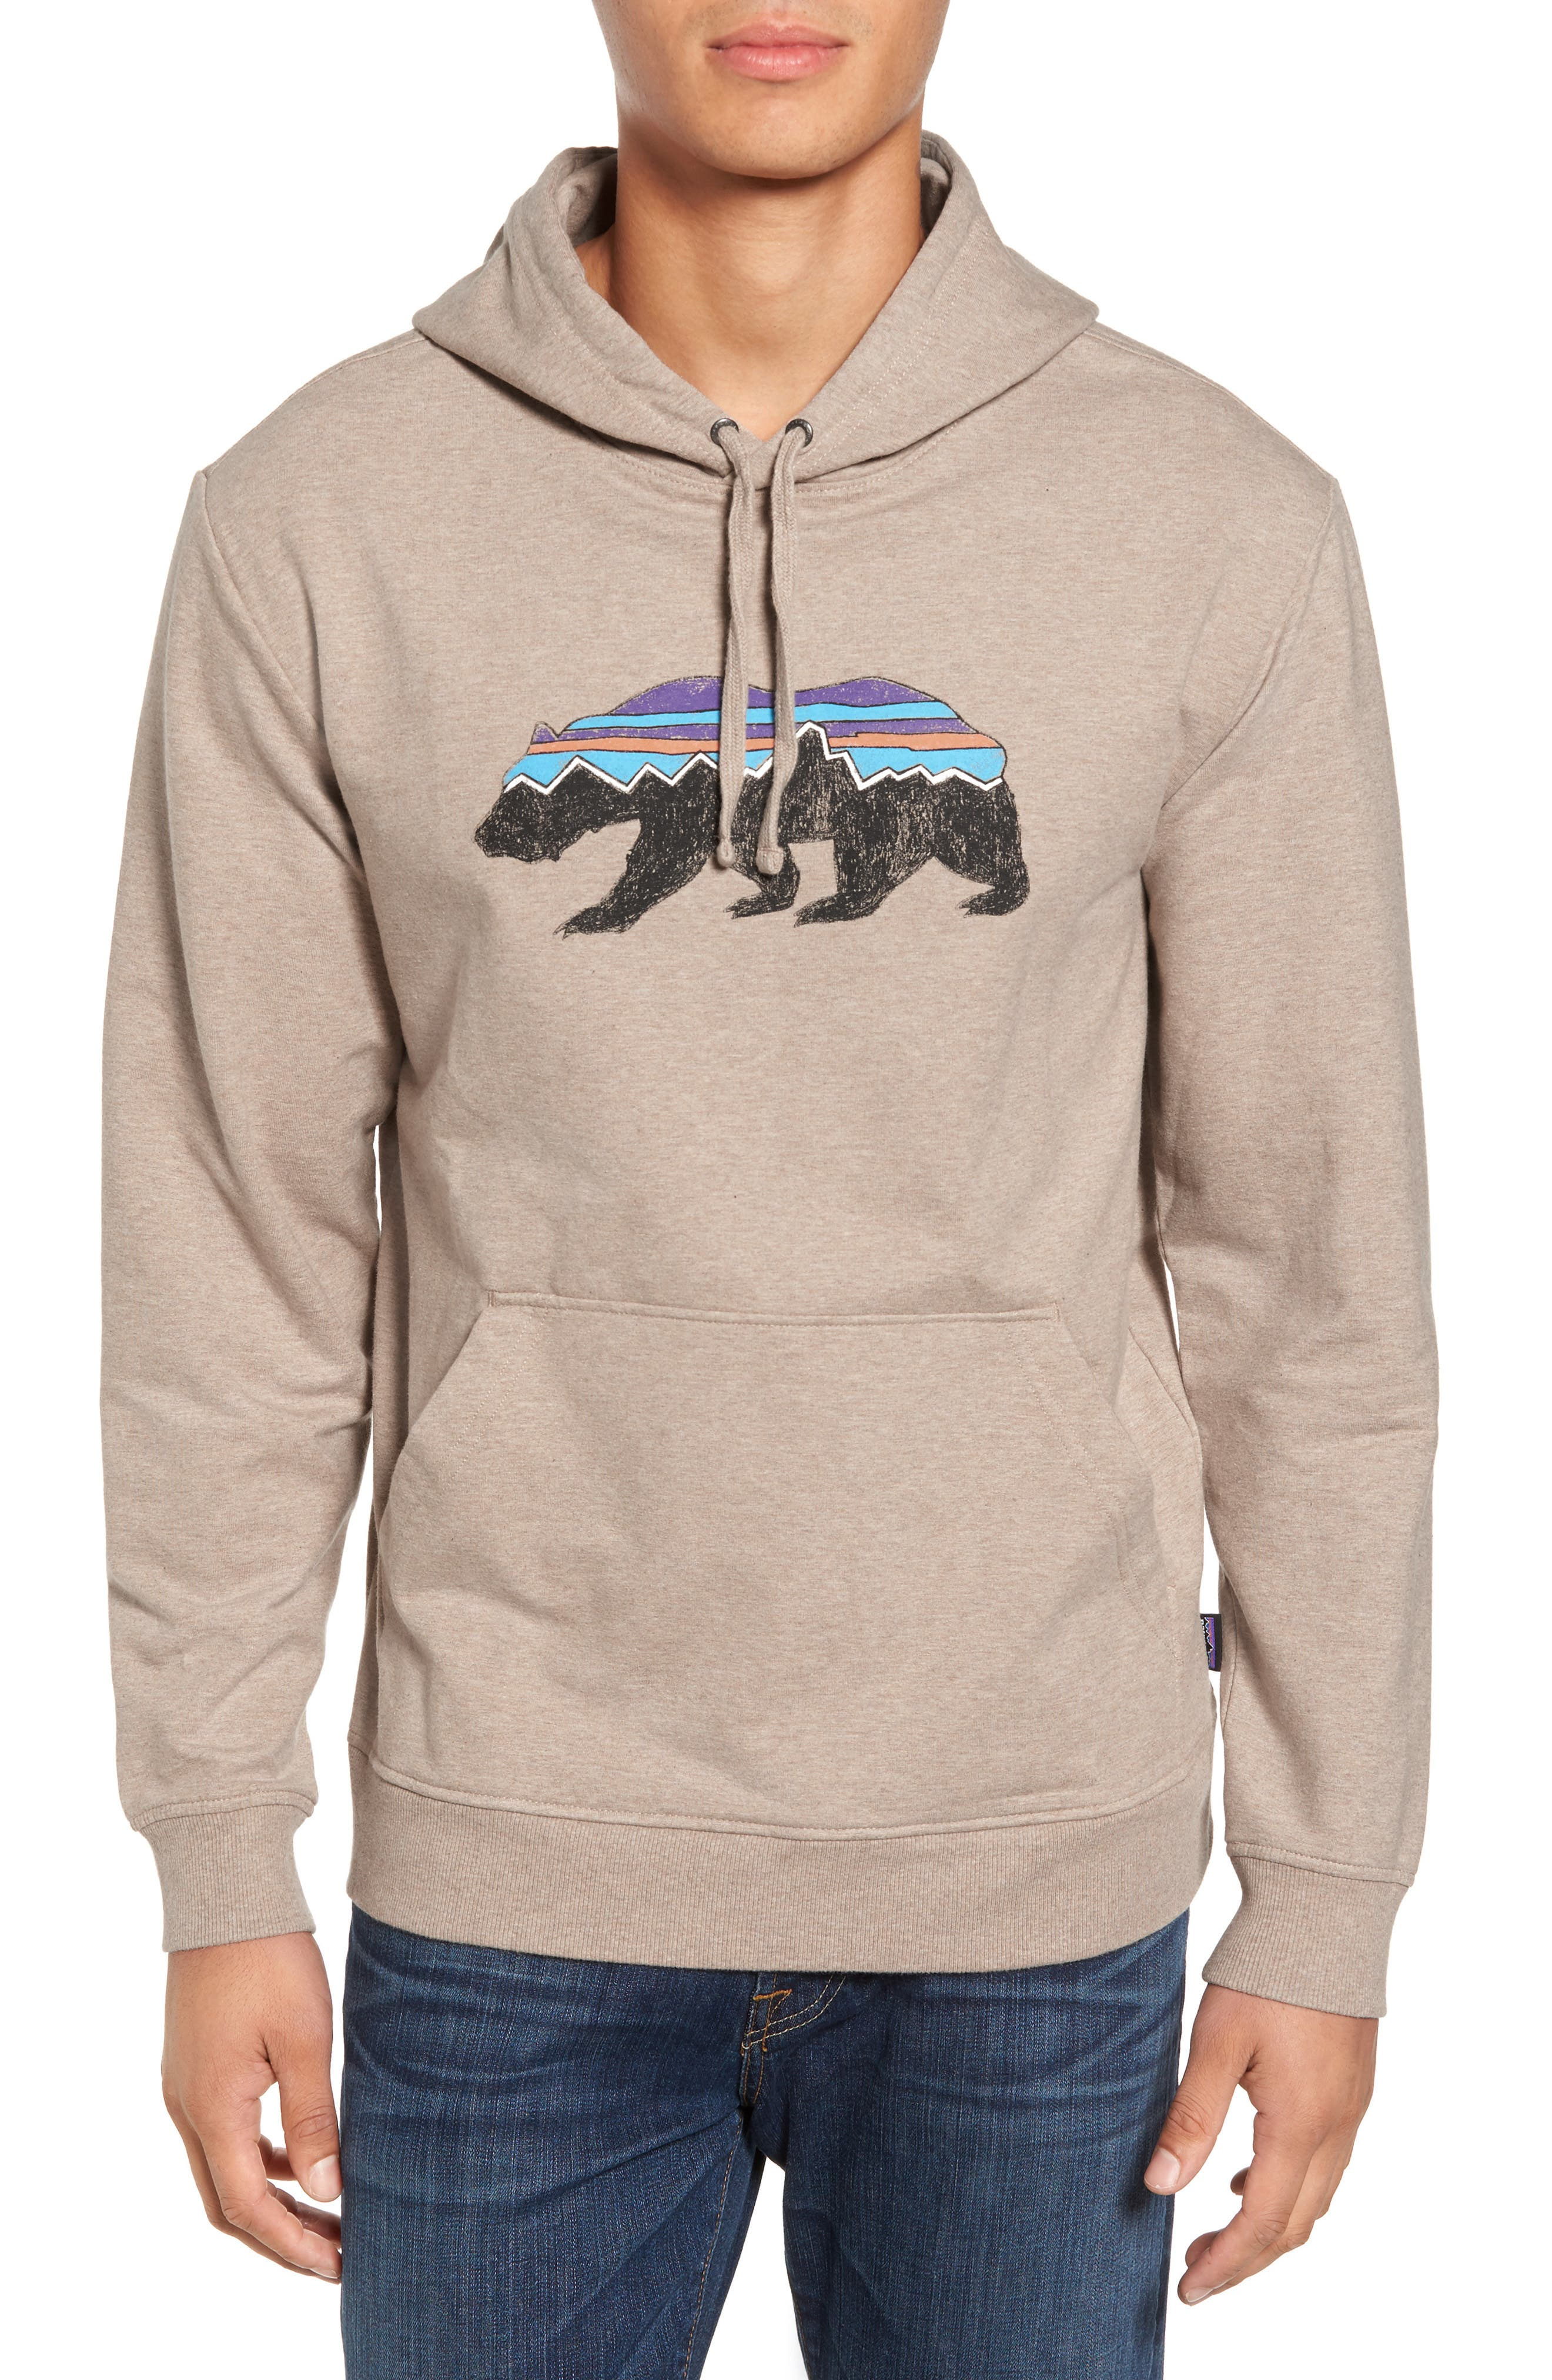 Main Image - Patagonia Fitz Roy Bear Graphic Hoodie